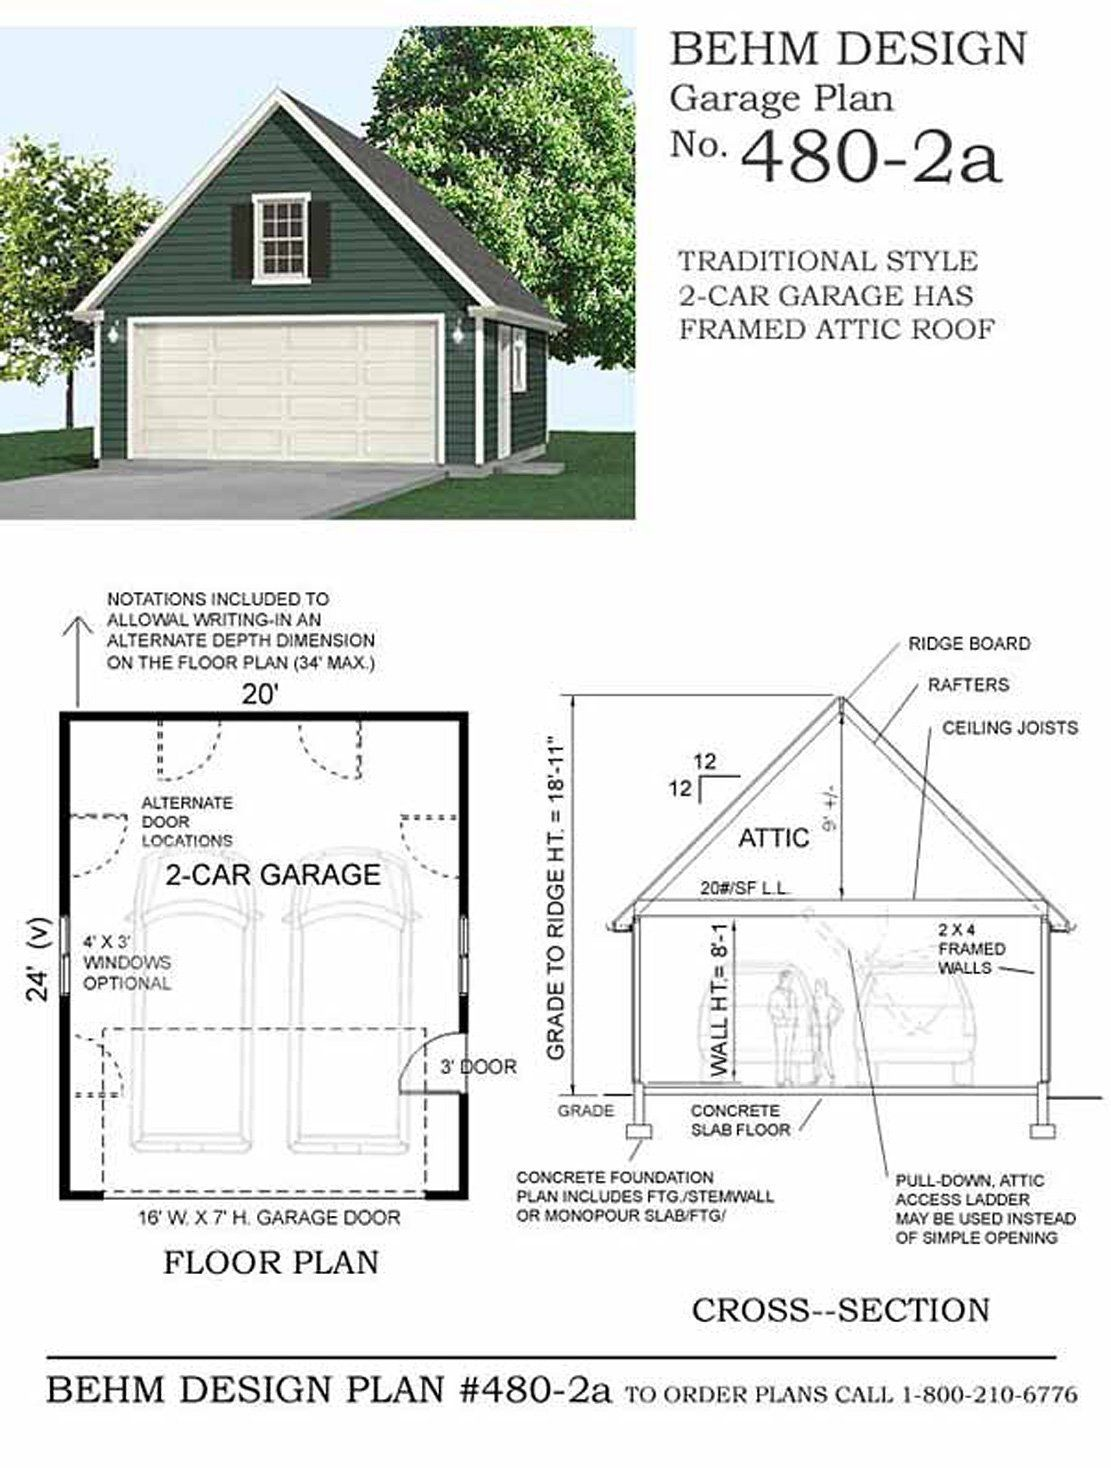 Garage Plans 2 Car Compact, Steep Roof Garage Plan With